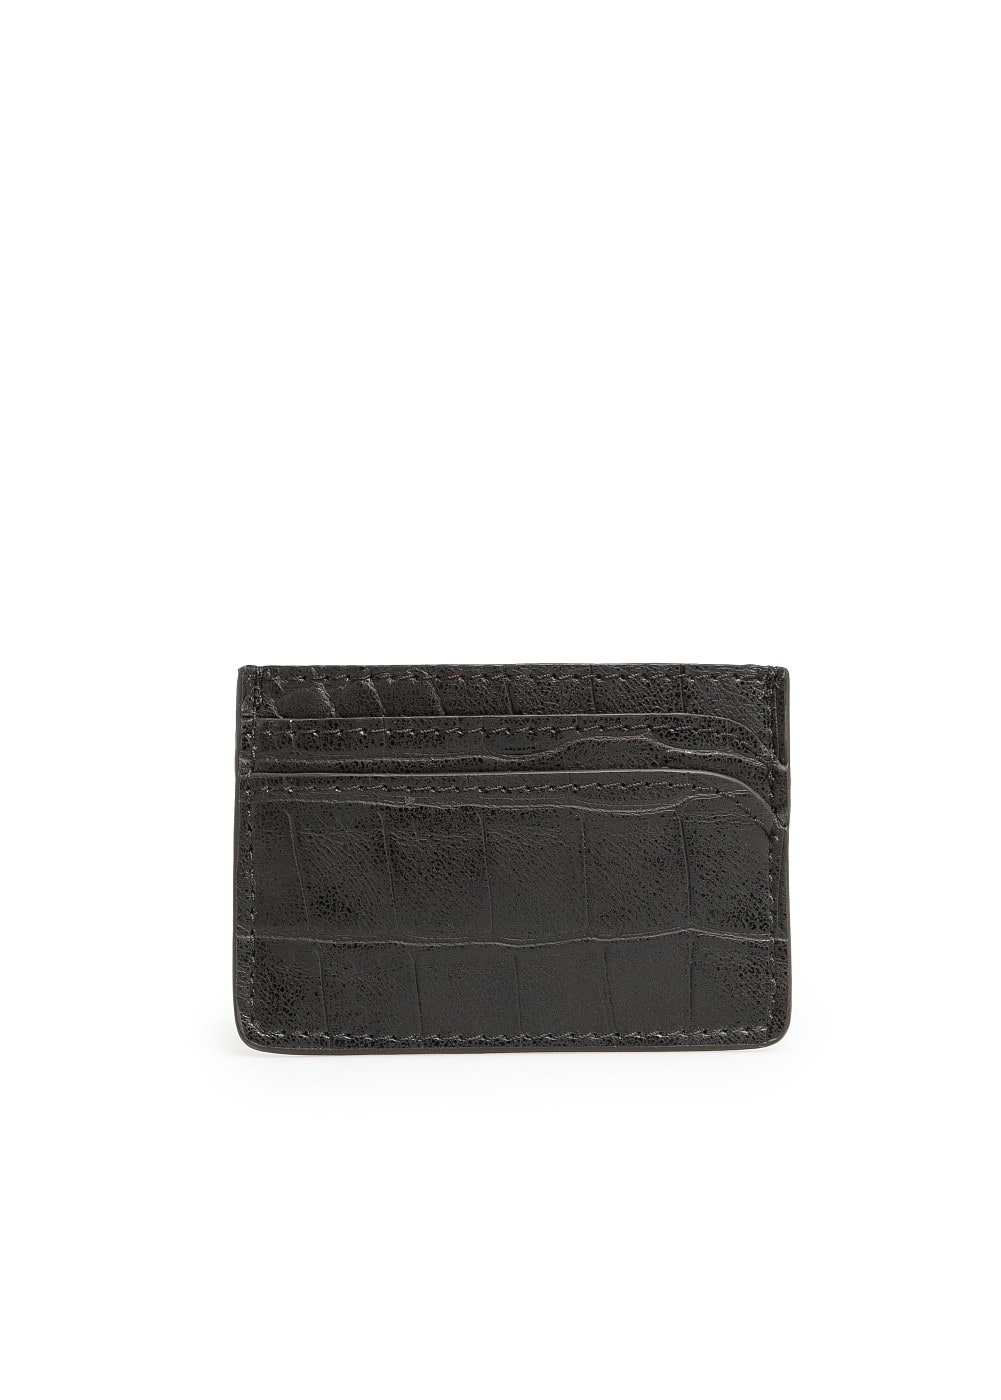 CROC EFFECT CARD HOLDER